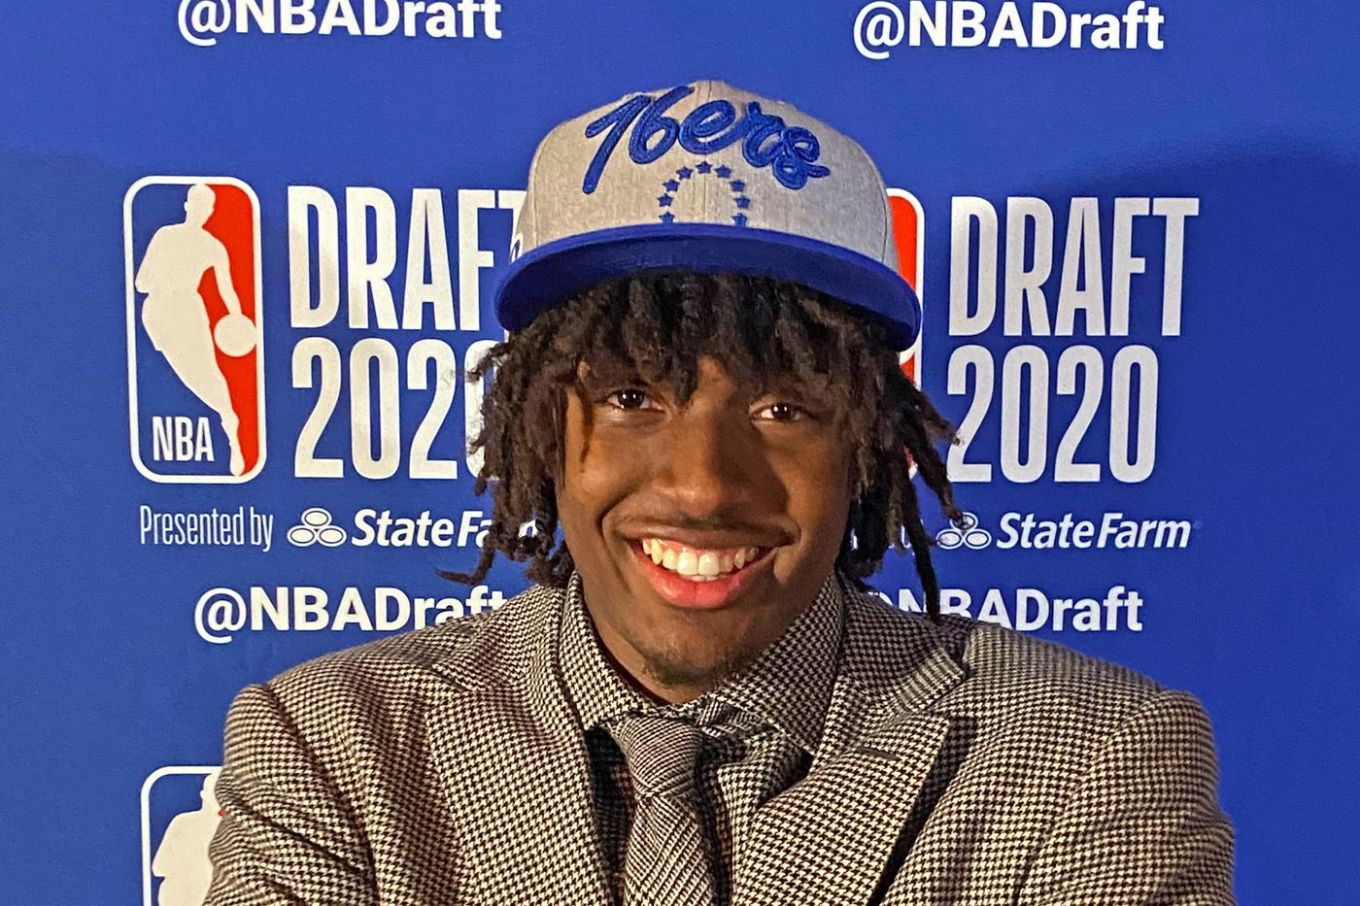 2020 NBA Draft Grades Roundup: How experts feel about the Sixers draft  picks - Liberty Ballers